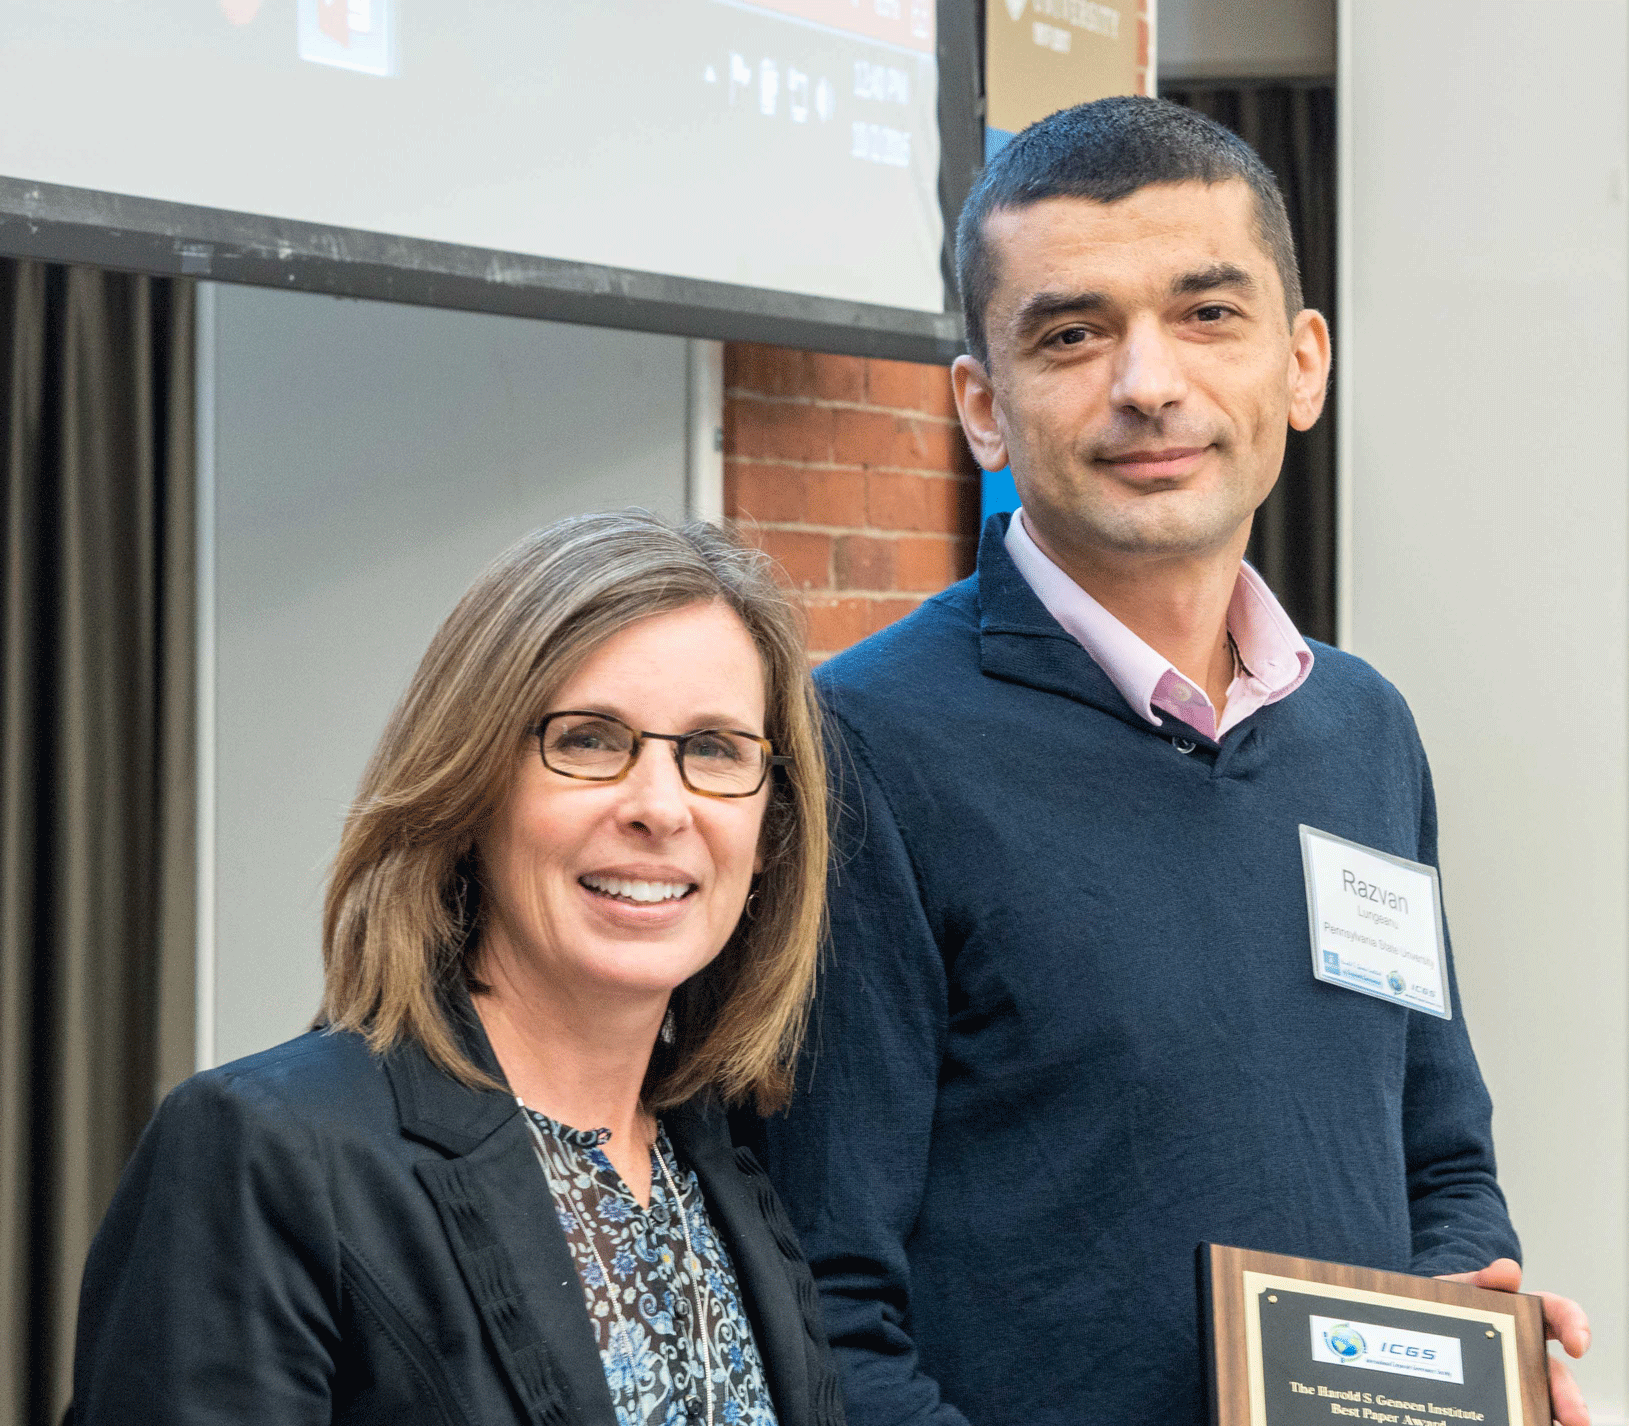 Conference Chair Cynthia Clark with Best Paper Awardee Razvan Lungeanu